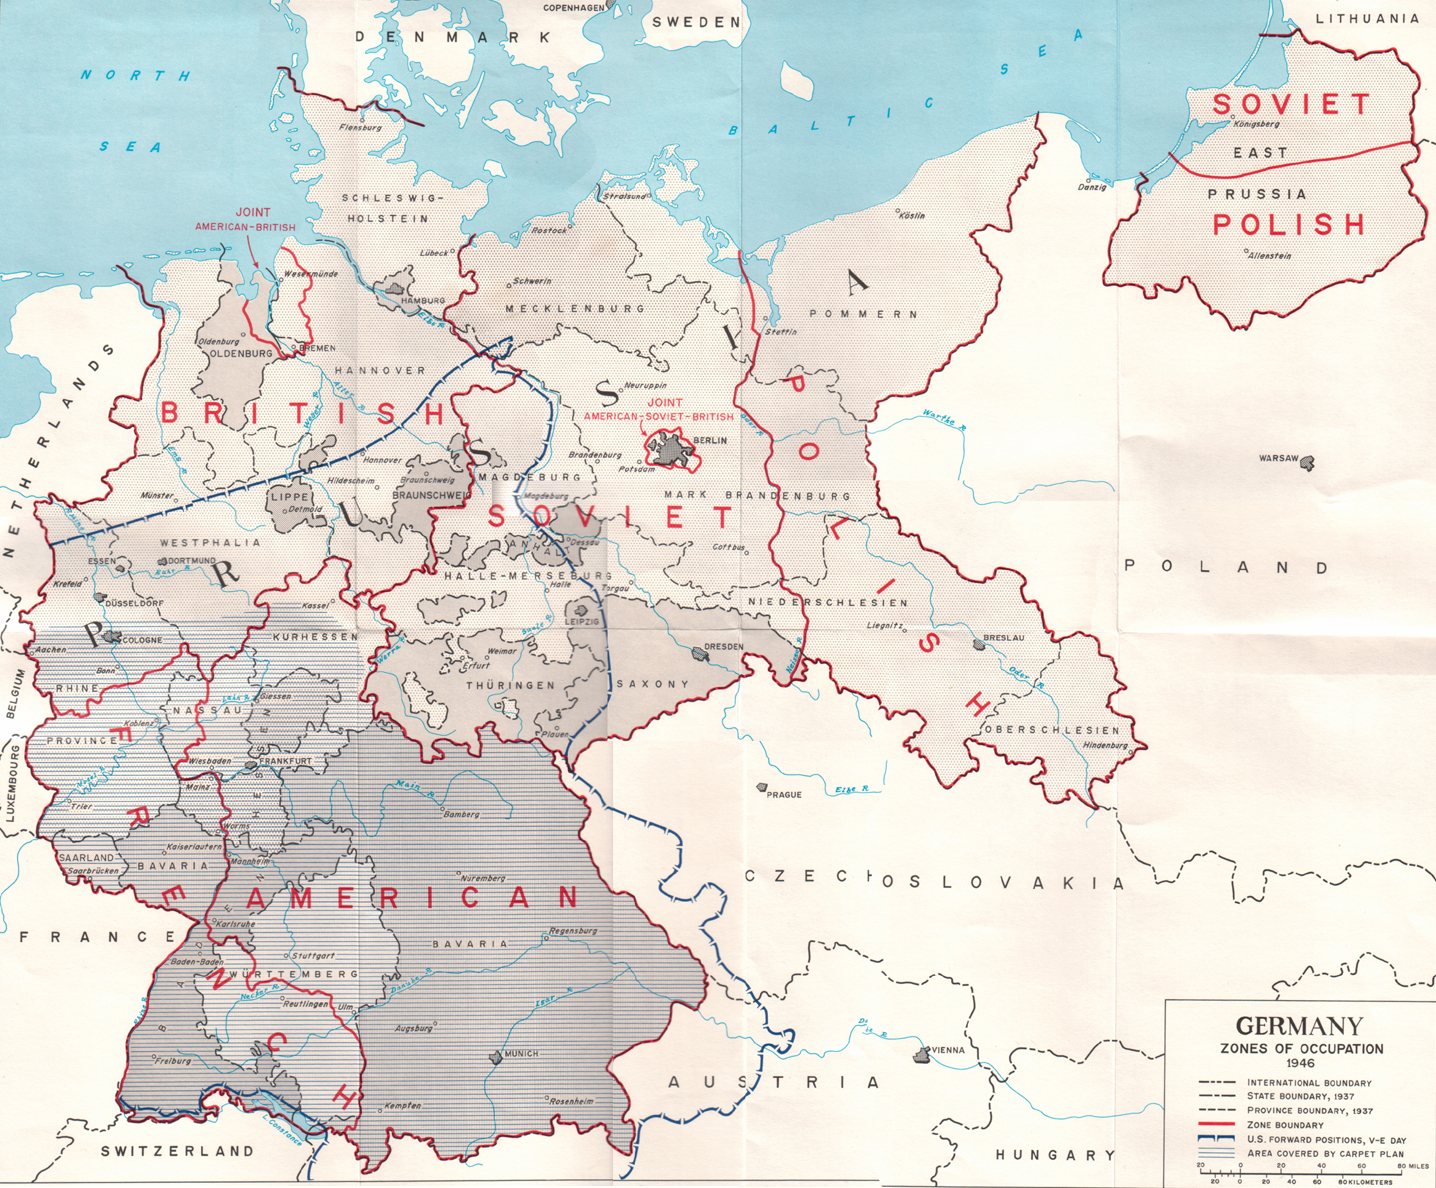 Description us army germany occupation zones 1945